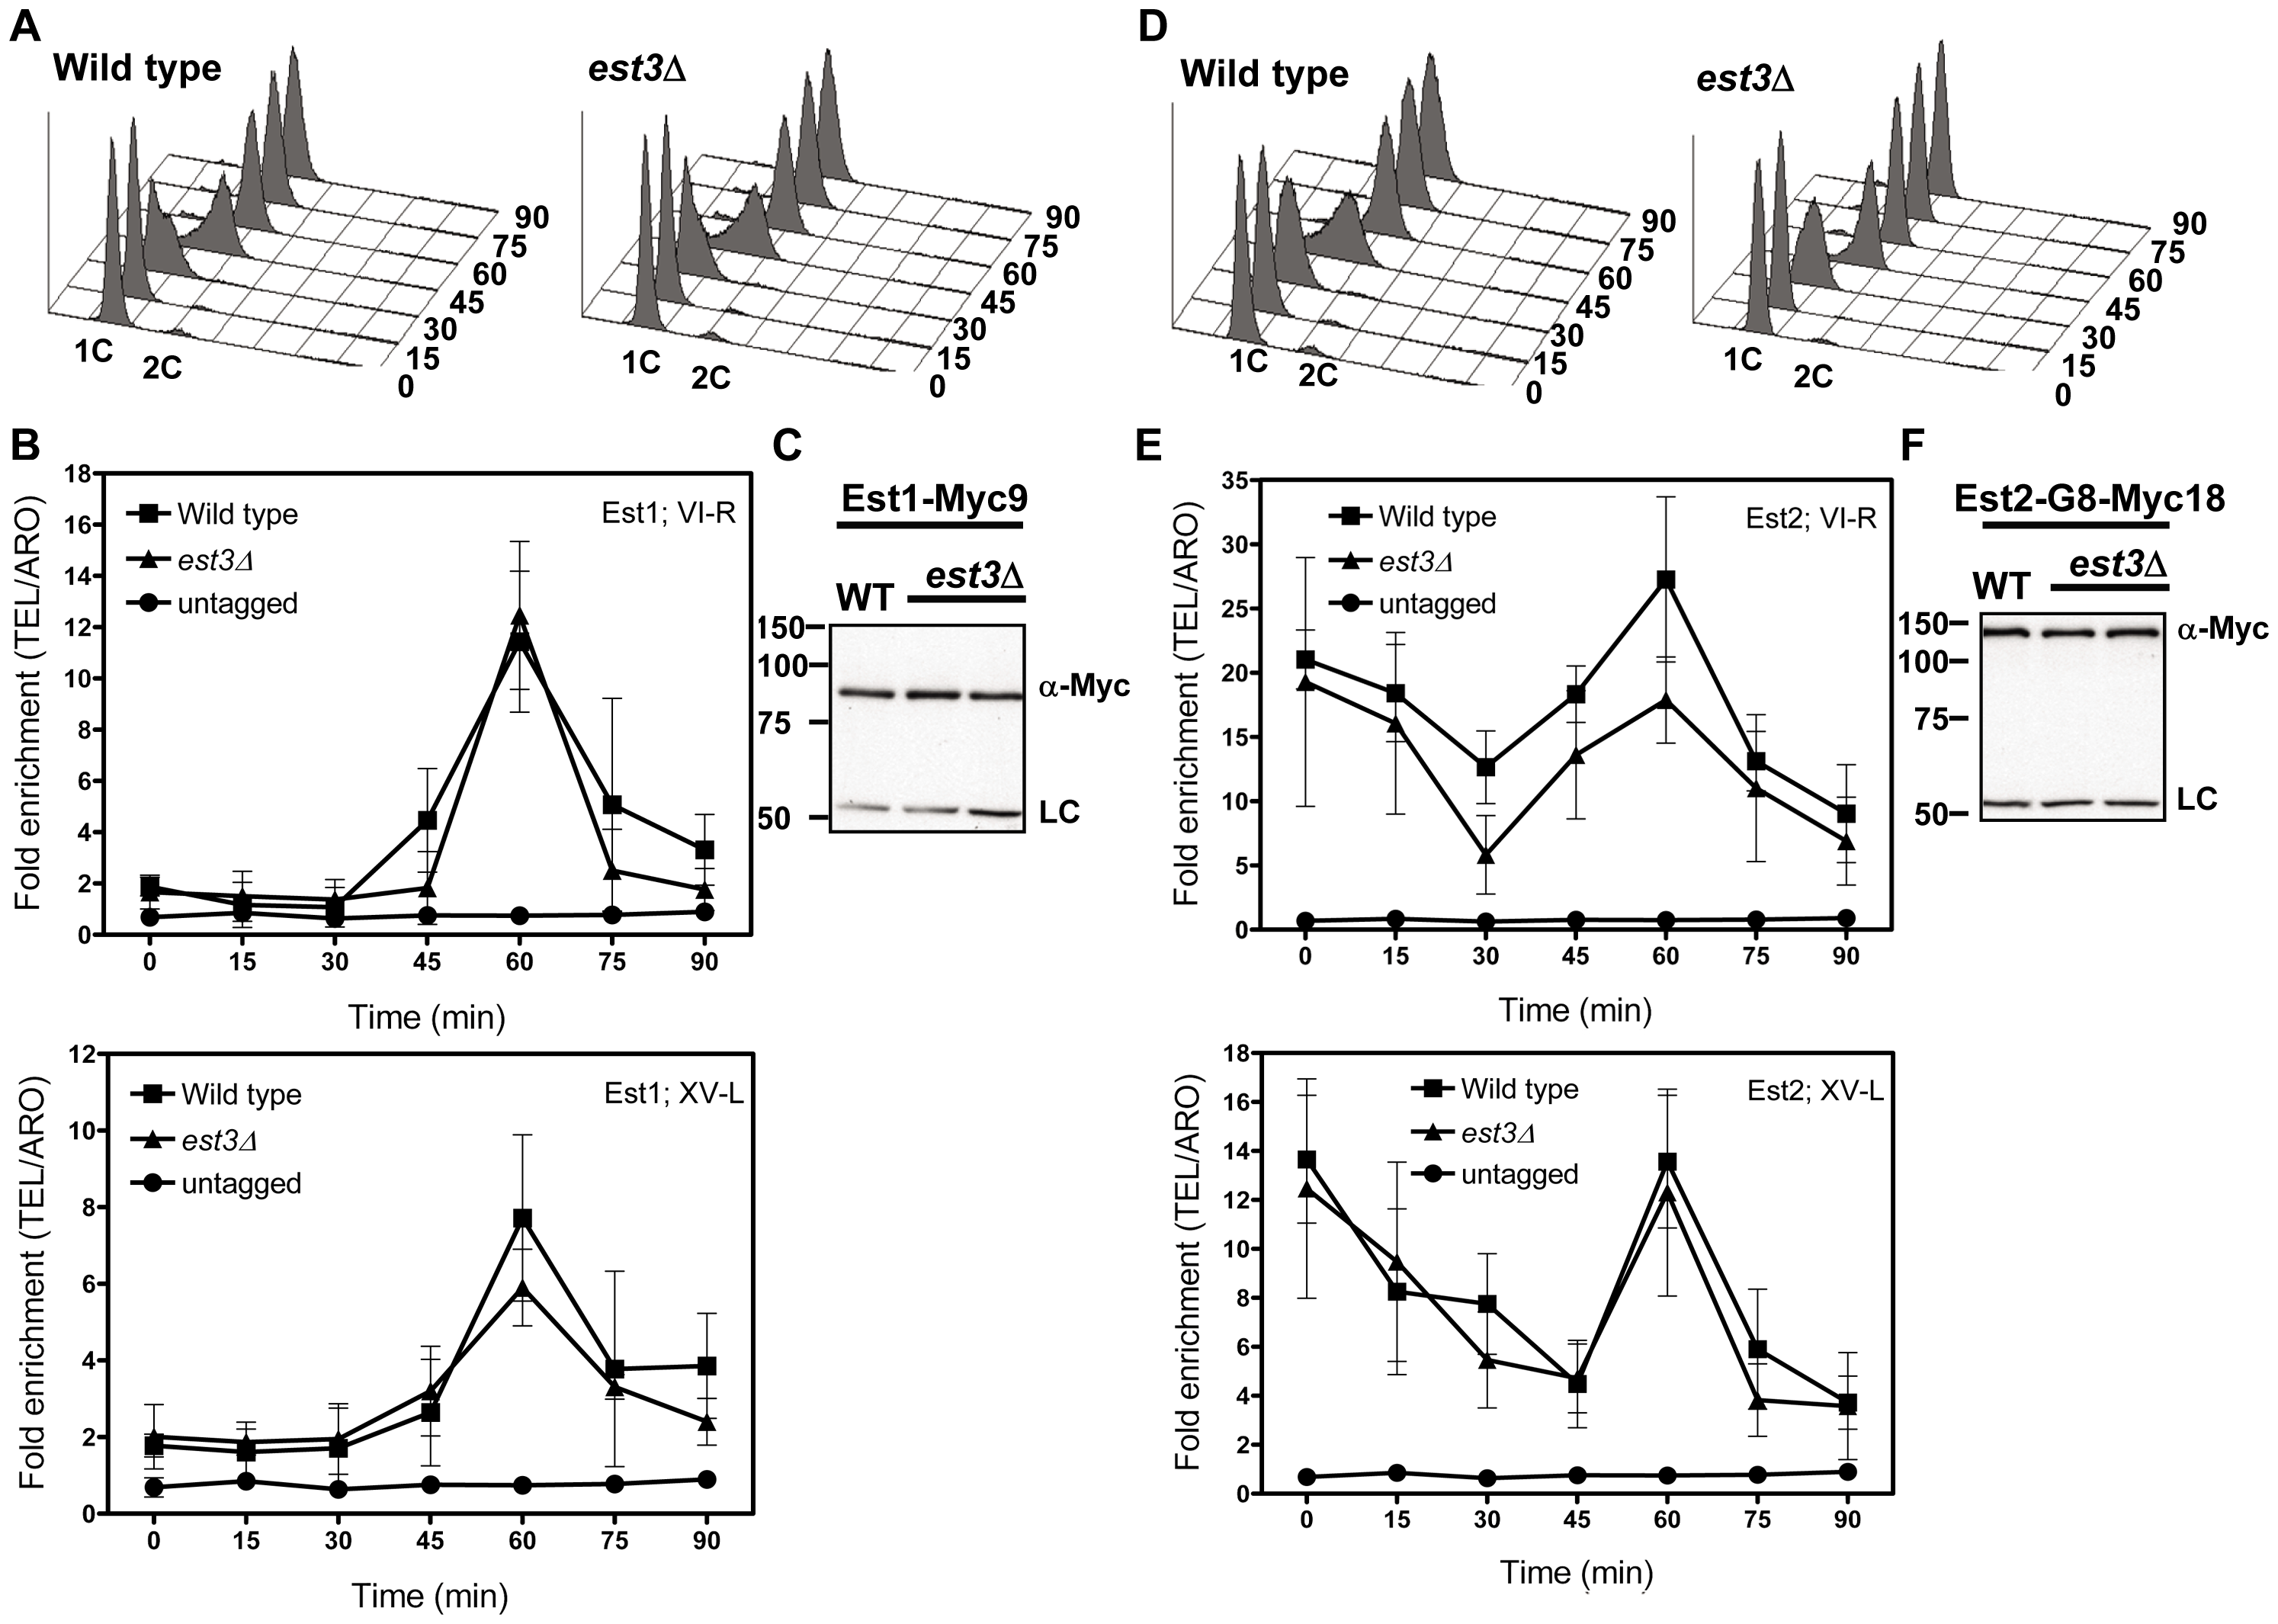 The late S/G2 phase telomere association of Est1 and Est2 is not reduced in the absence of <i>est3</i>Δ.